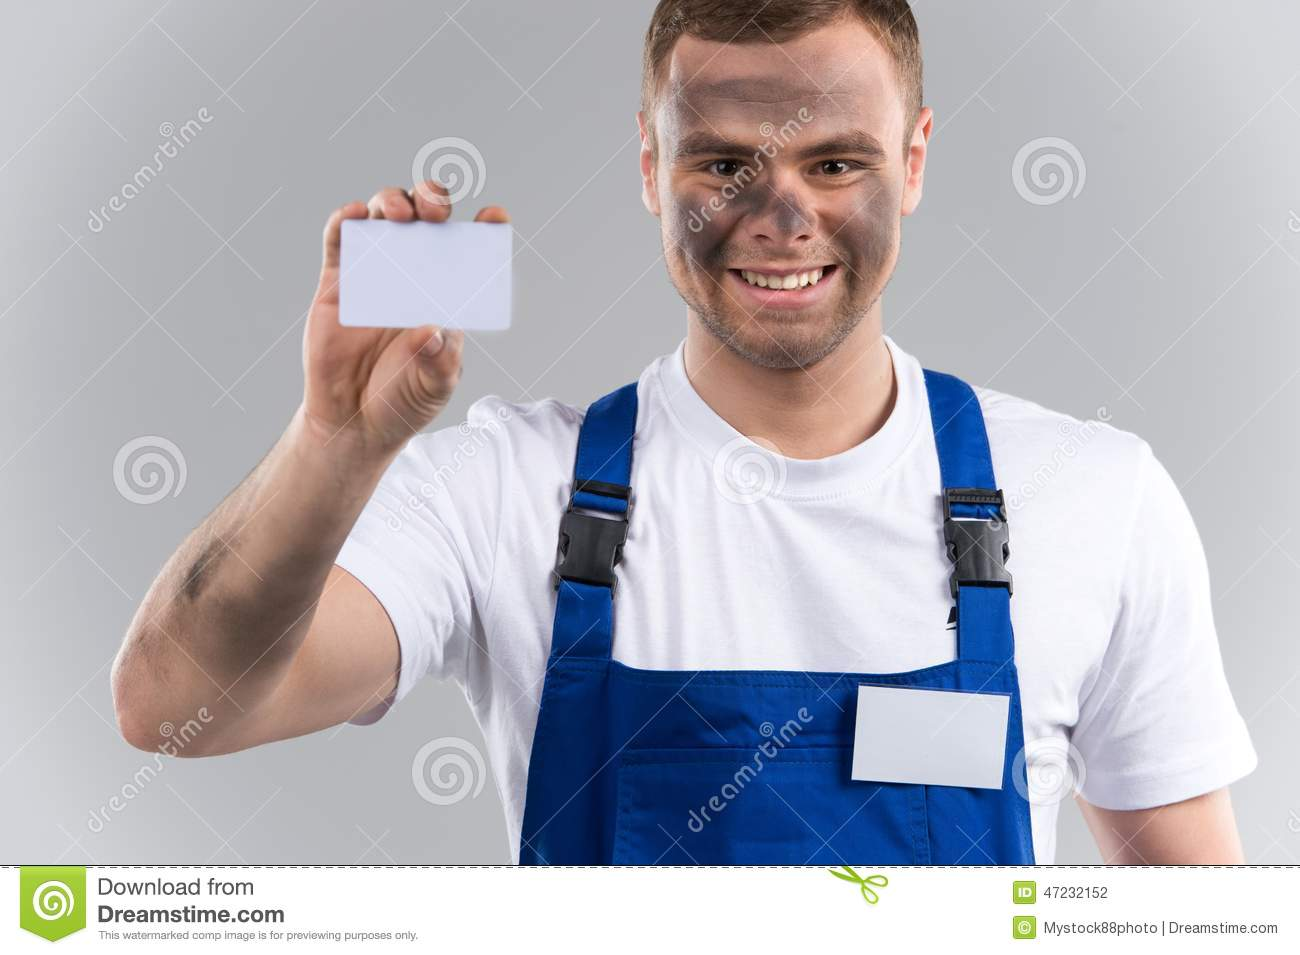 Man In Blue Overalls Holding Business Card. Stock Photo - Image of ...